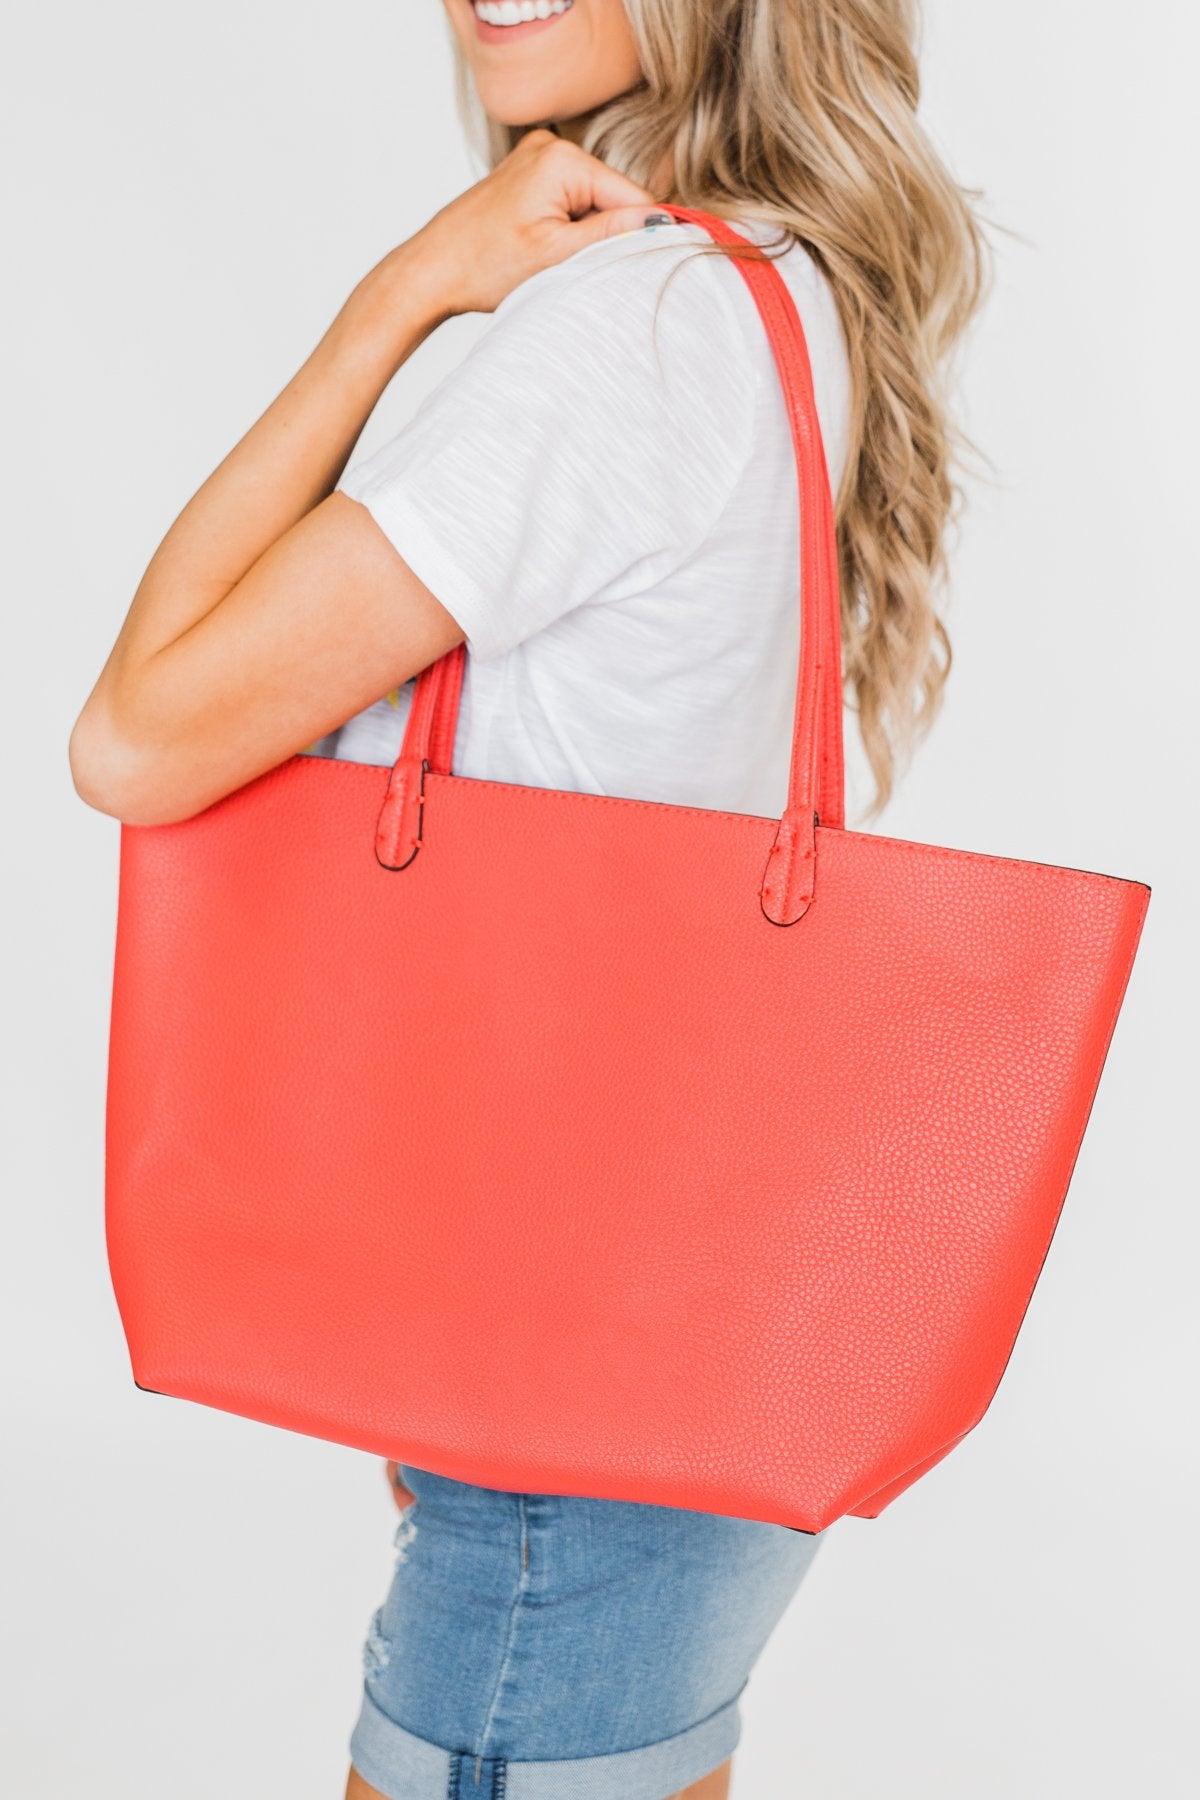 Bring on the Day Zipper Purse- Hot Pink